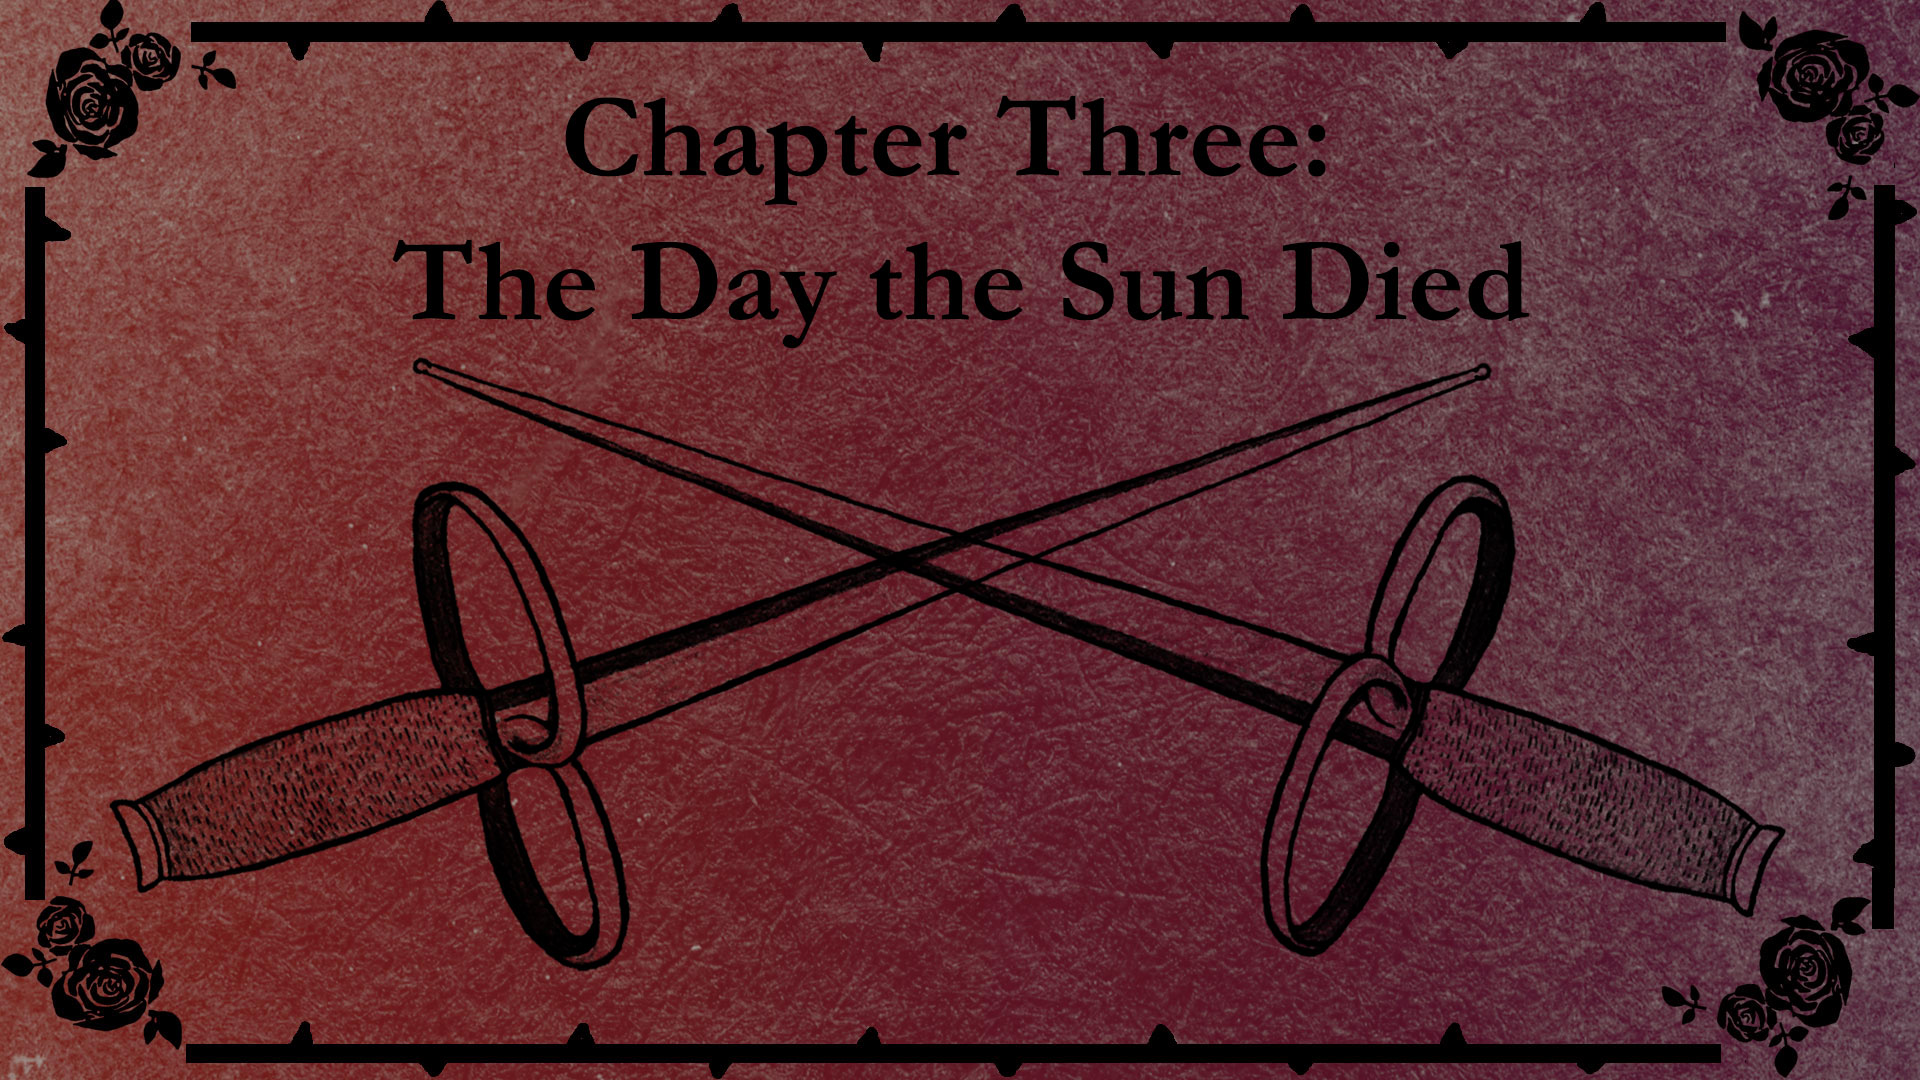 Chapter Three title slate with a drawing of Harold's fencing foils.